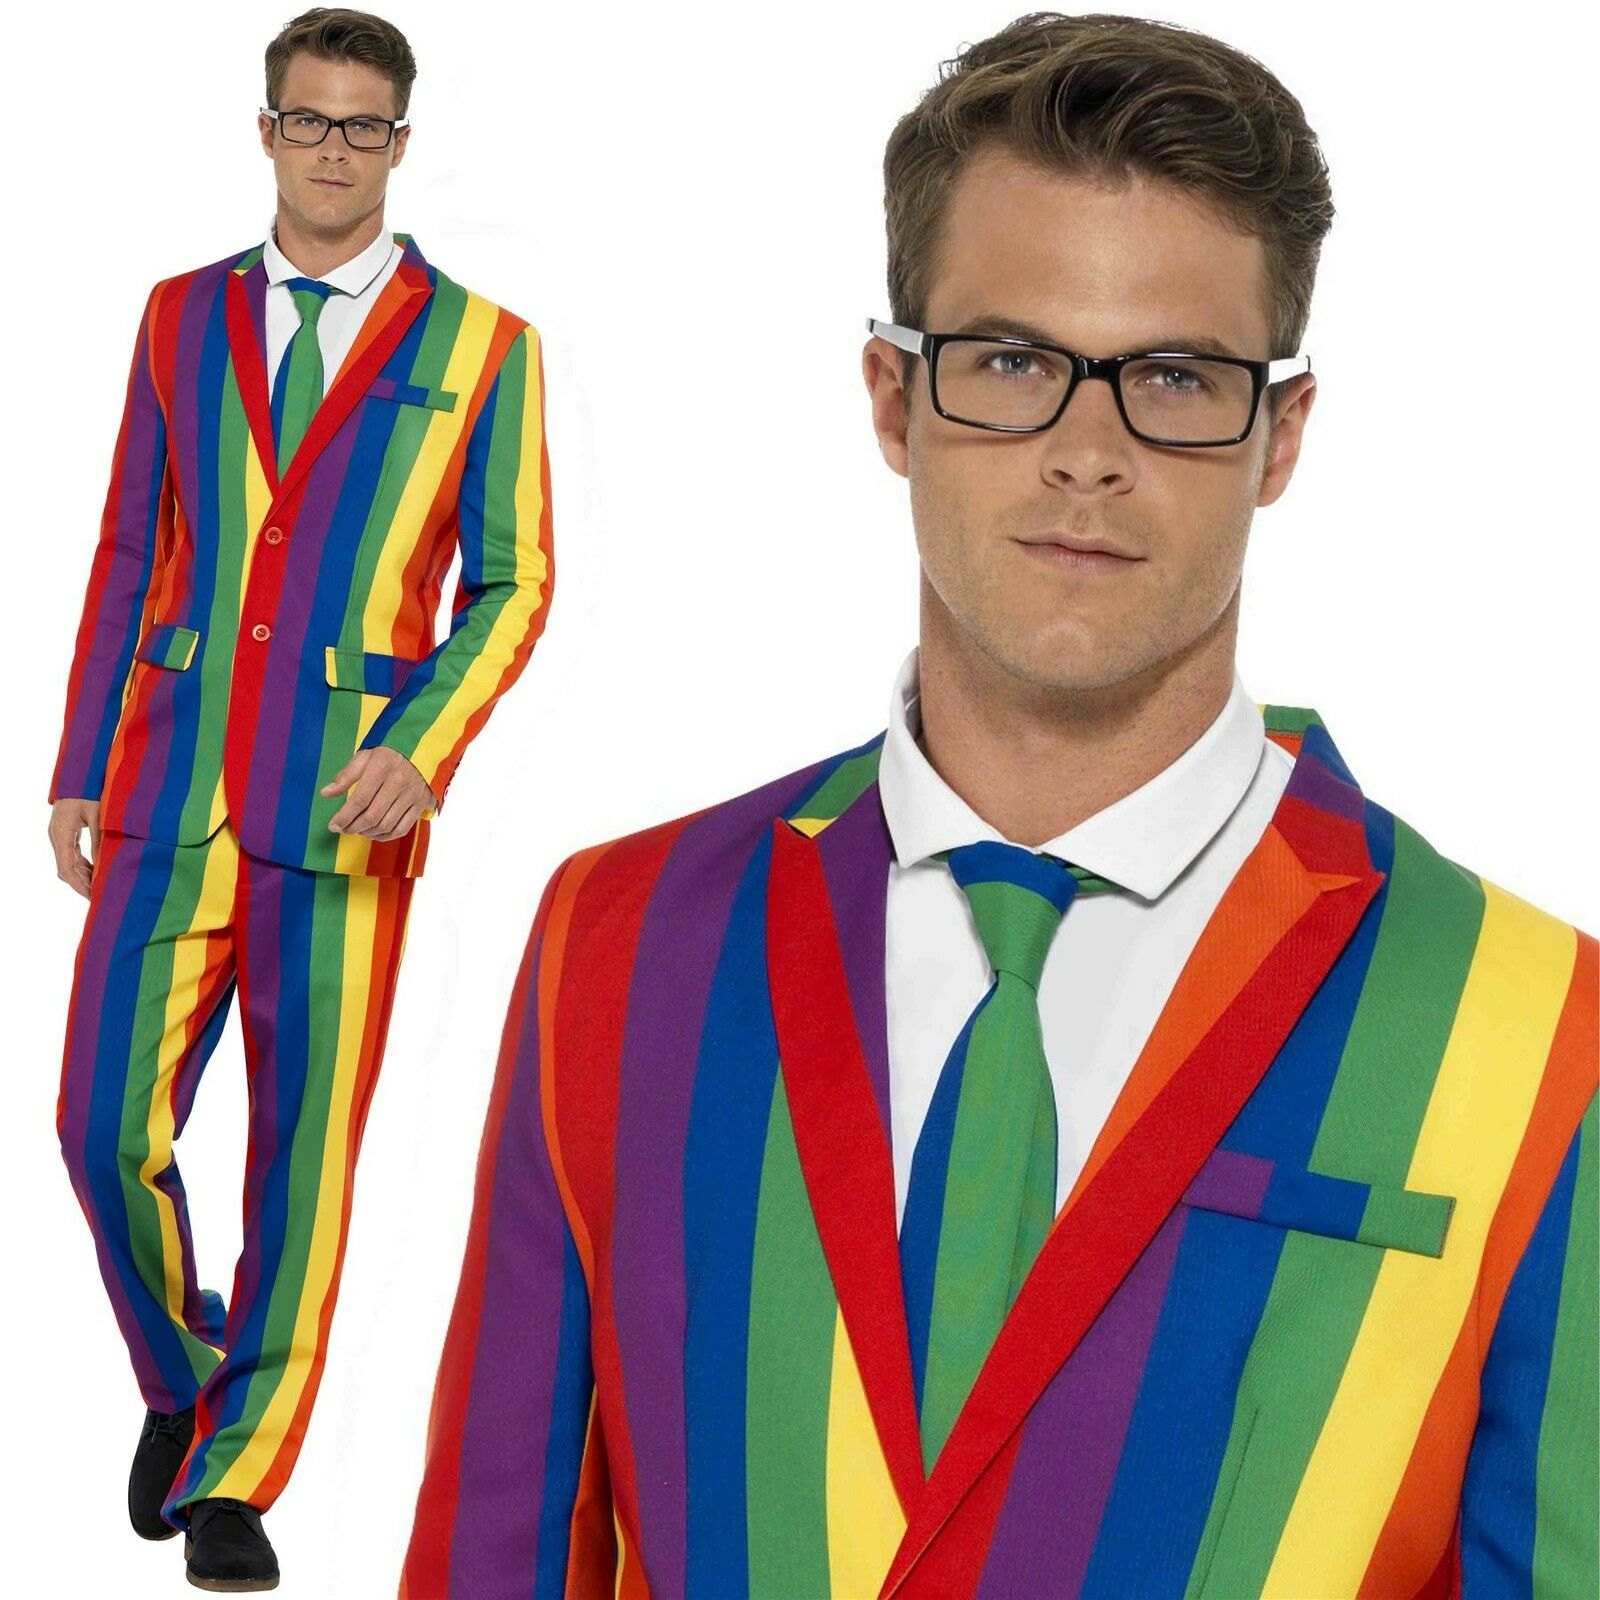 Mens Stand Out Suits Stag Do Party Rainbow Gay Pride Pride Pride Comedy Fancy Dress Costume | Berühmter Laden